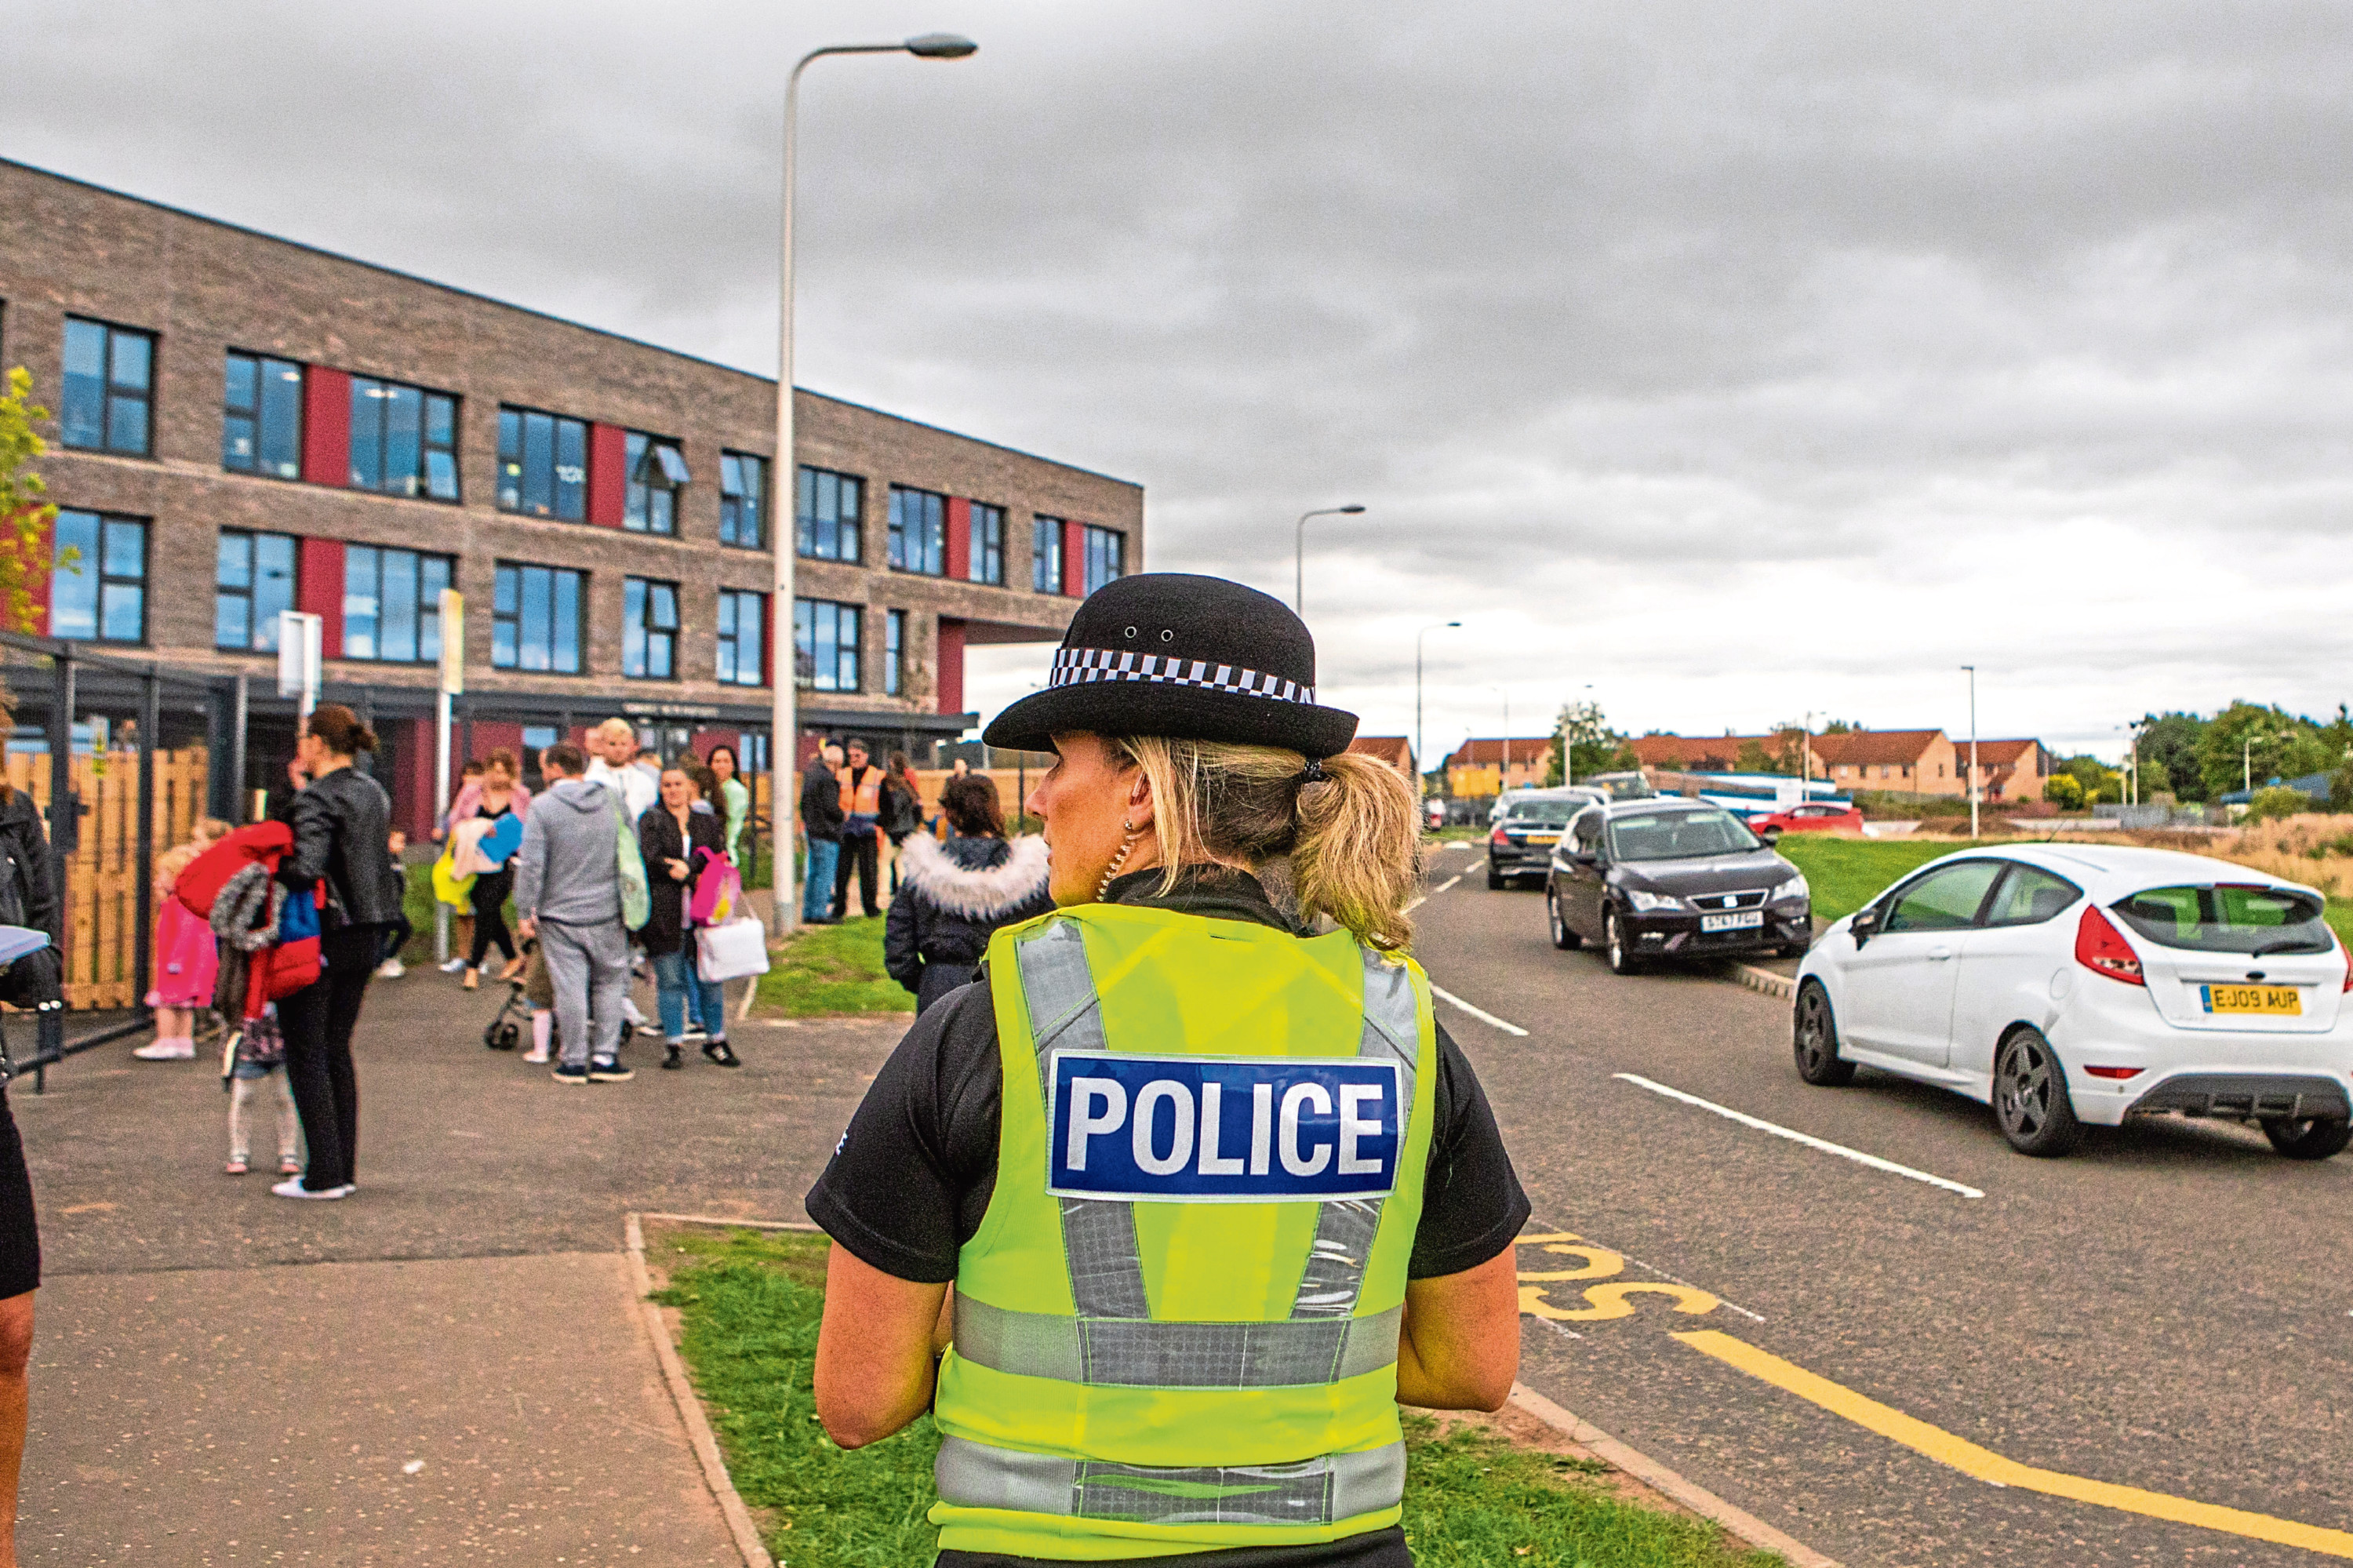 Police have been directing traffic at the new North East Campus